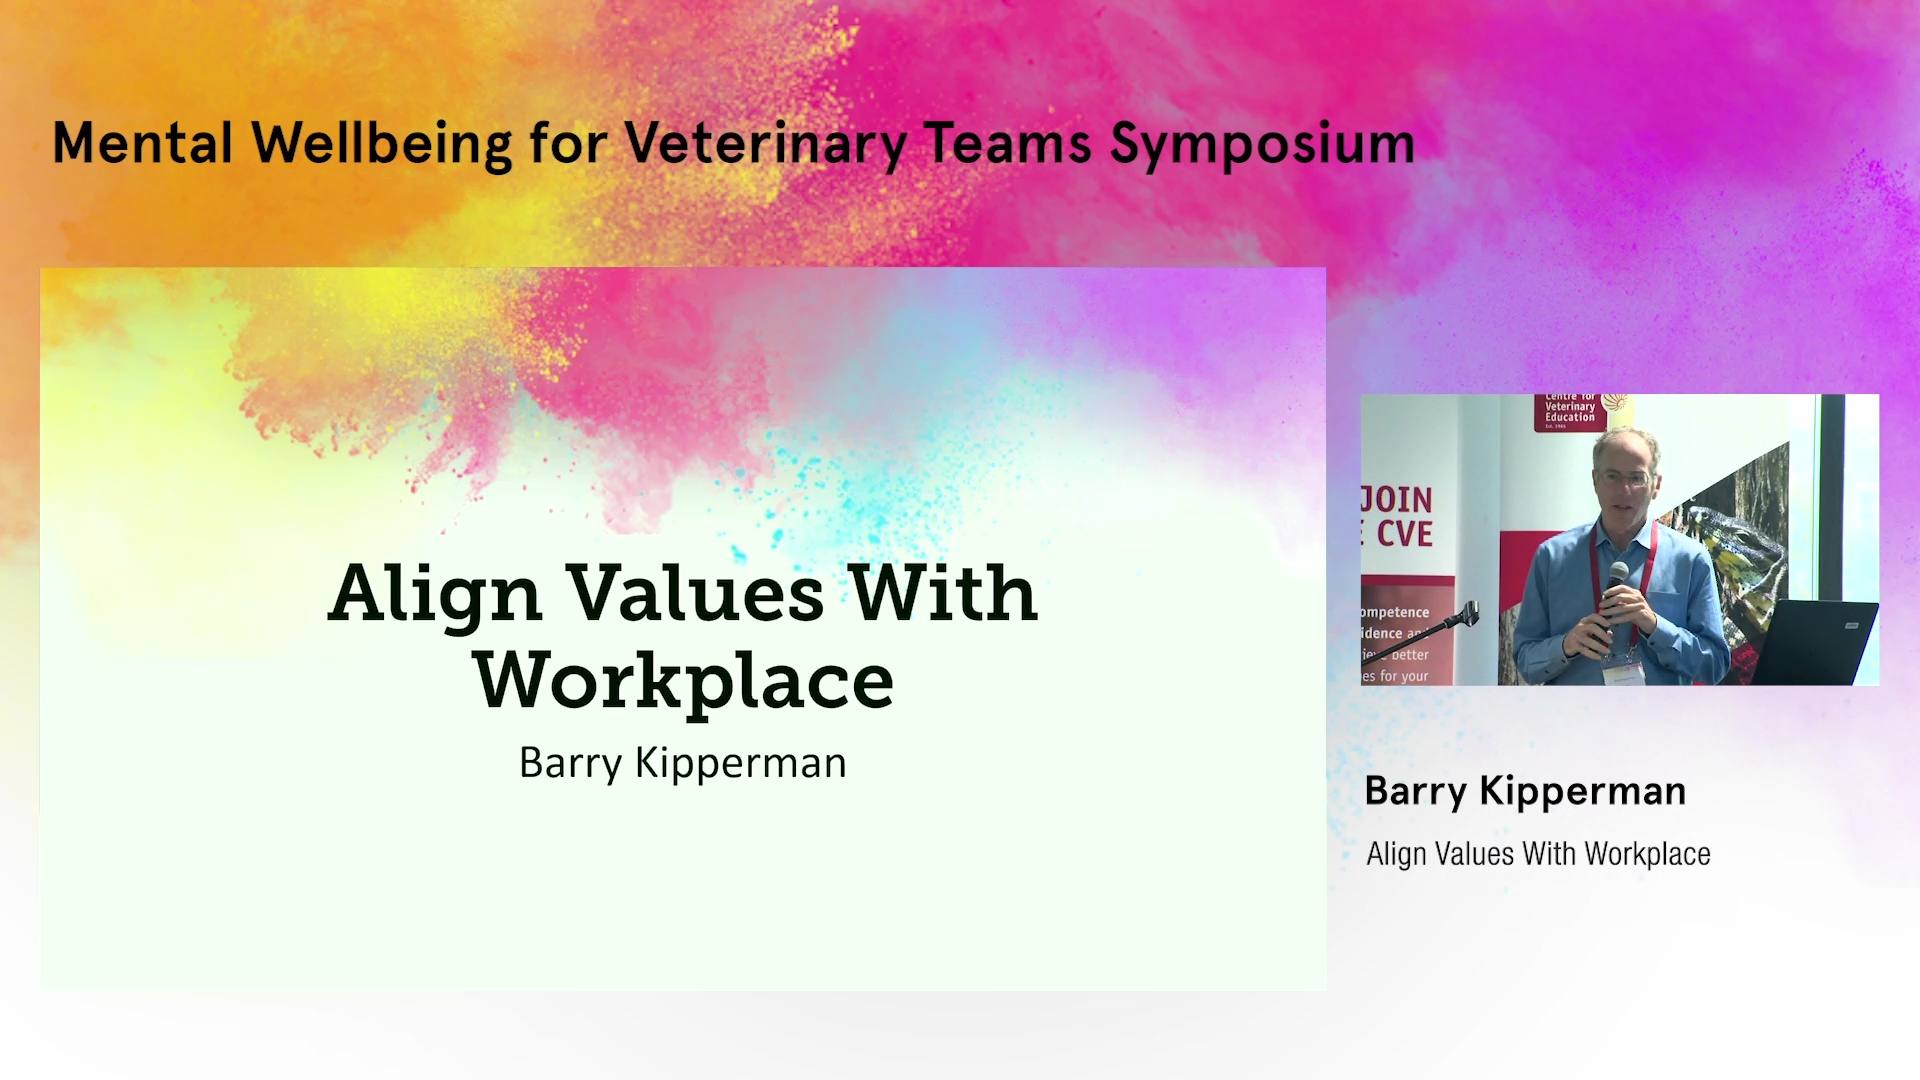 Align Values With Workplace